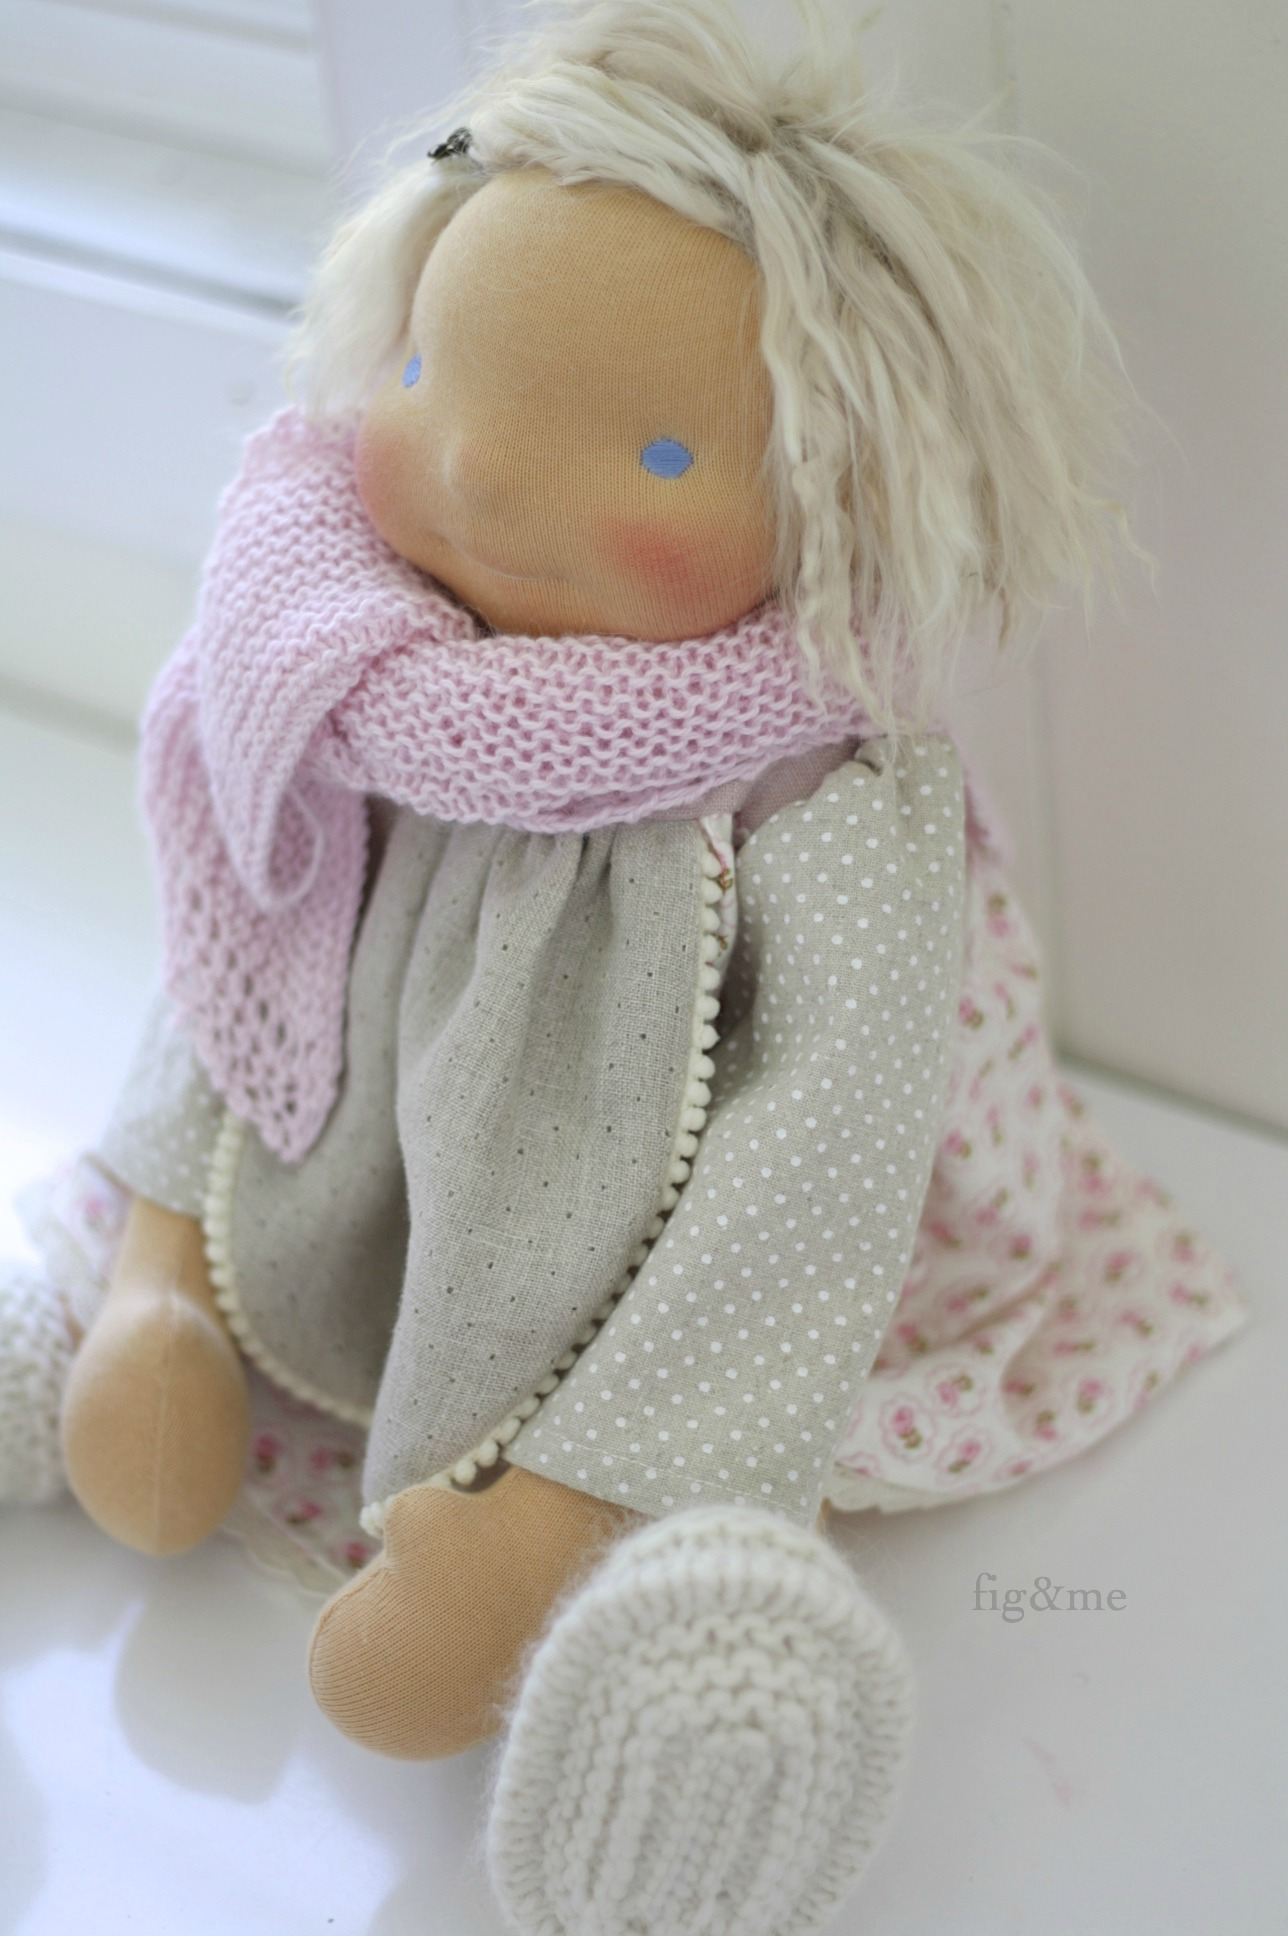 Dressed in linen, silk, alpaca, wool and cotton. By Fig&me